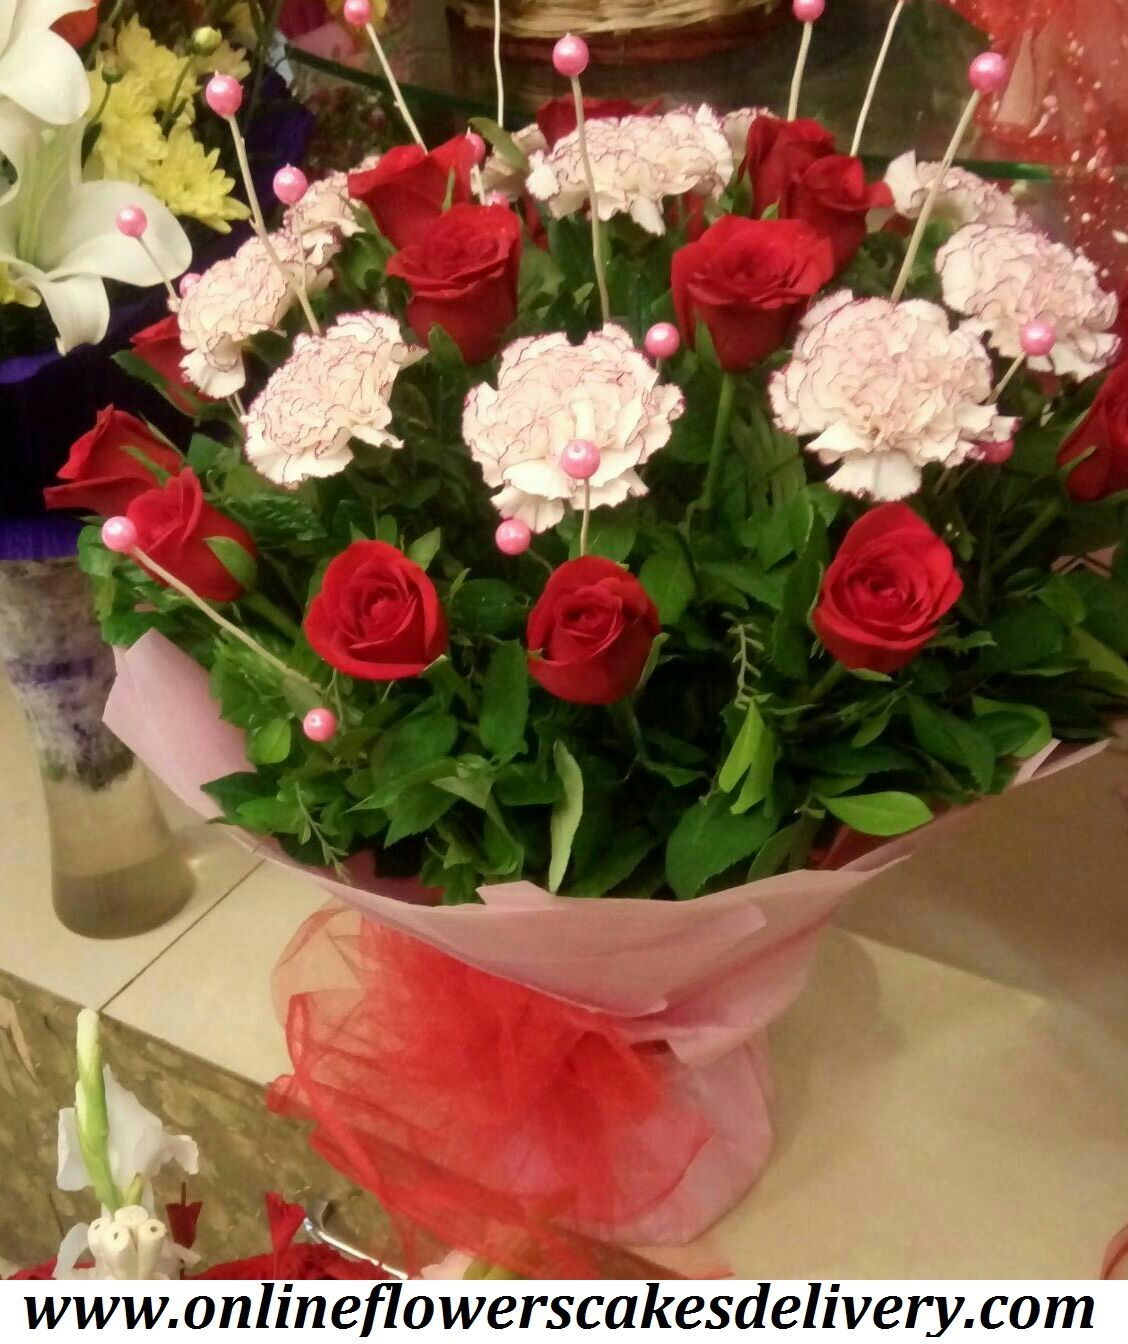 You must be looking to send flowers to Delhi on some day